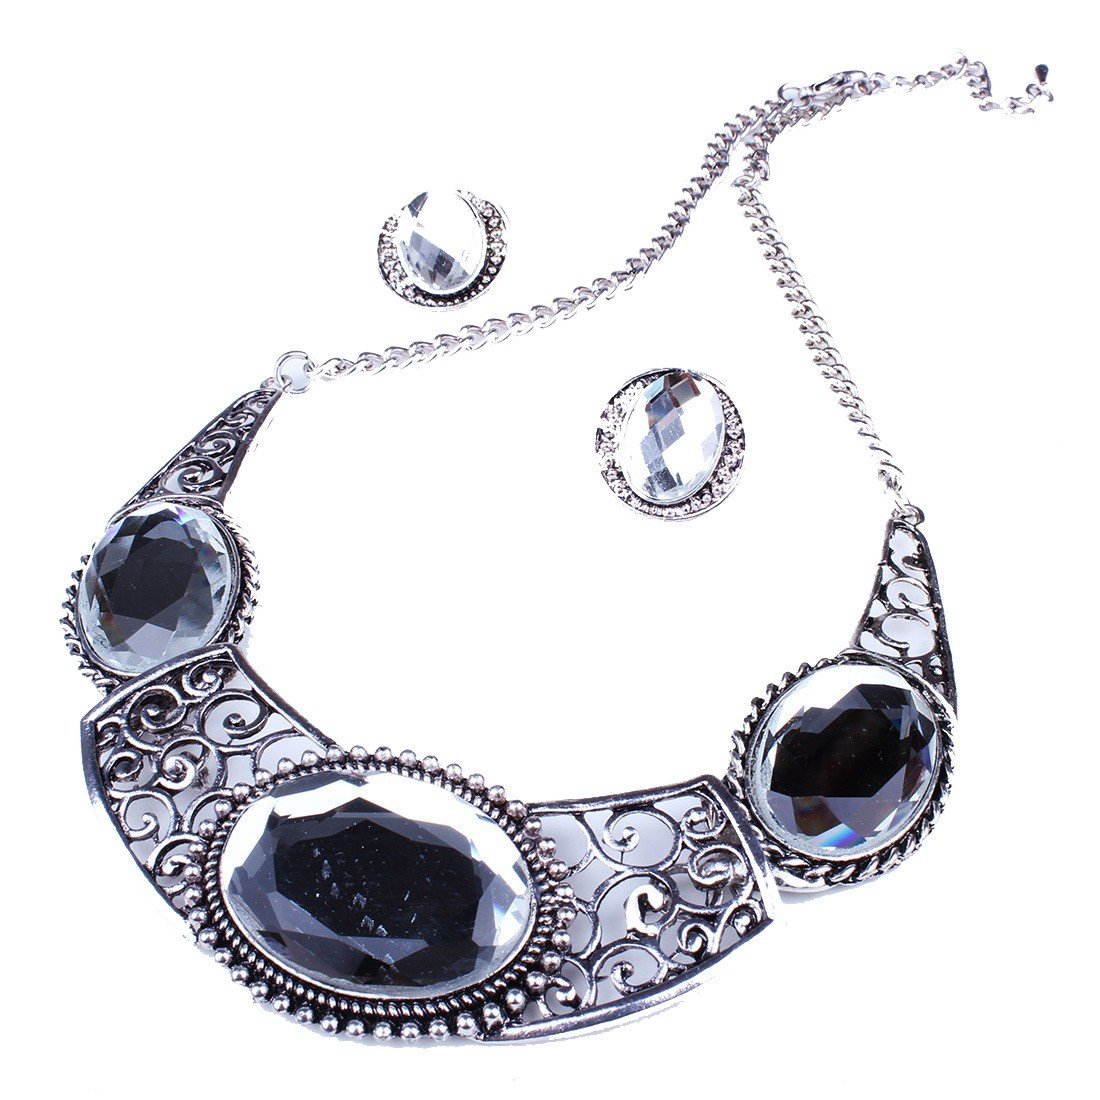 Qiyun Silver Alloy Vintage Clear Rhinestone Pendant Bib Choker Necklace Alliage D'Argent Mille sime Clair Collier W005N2332